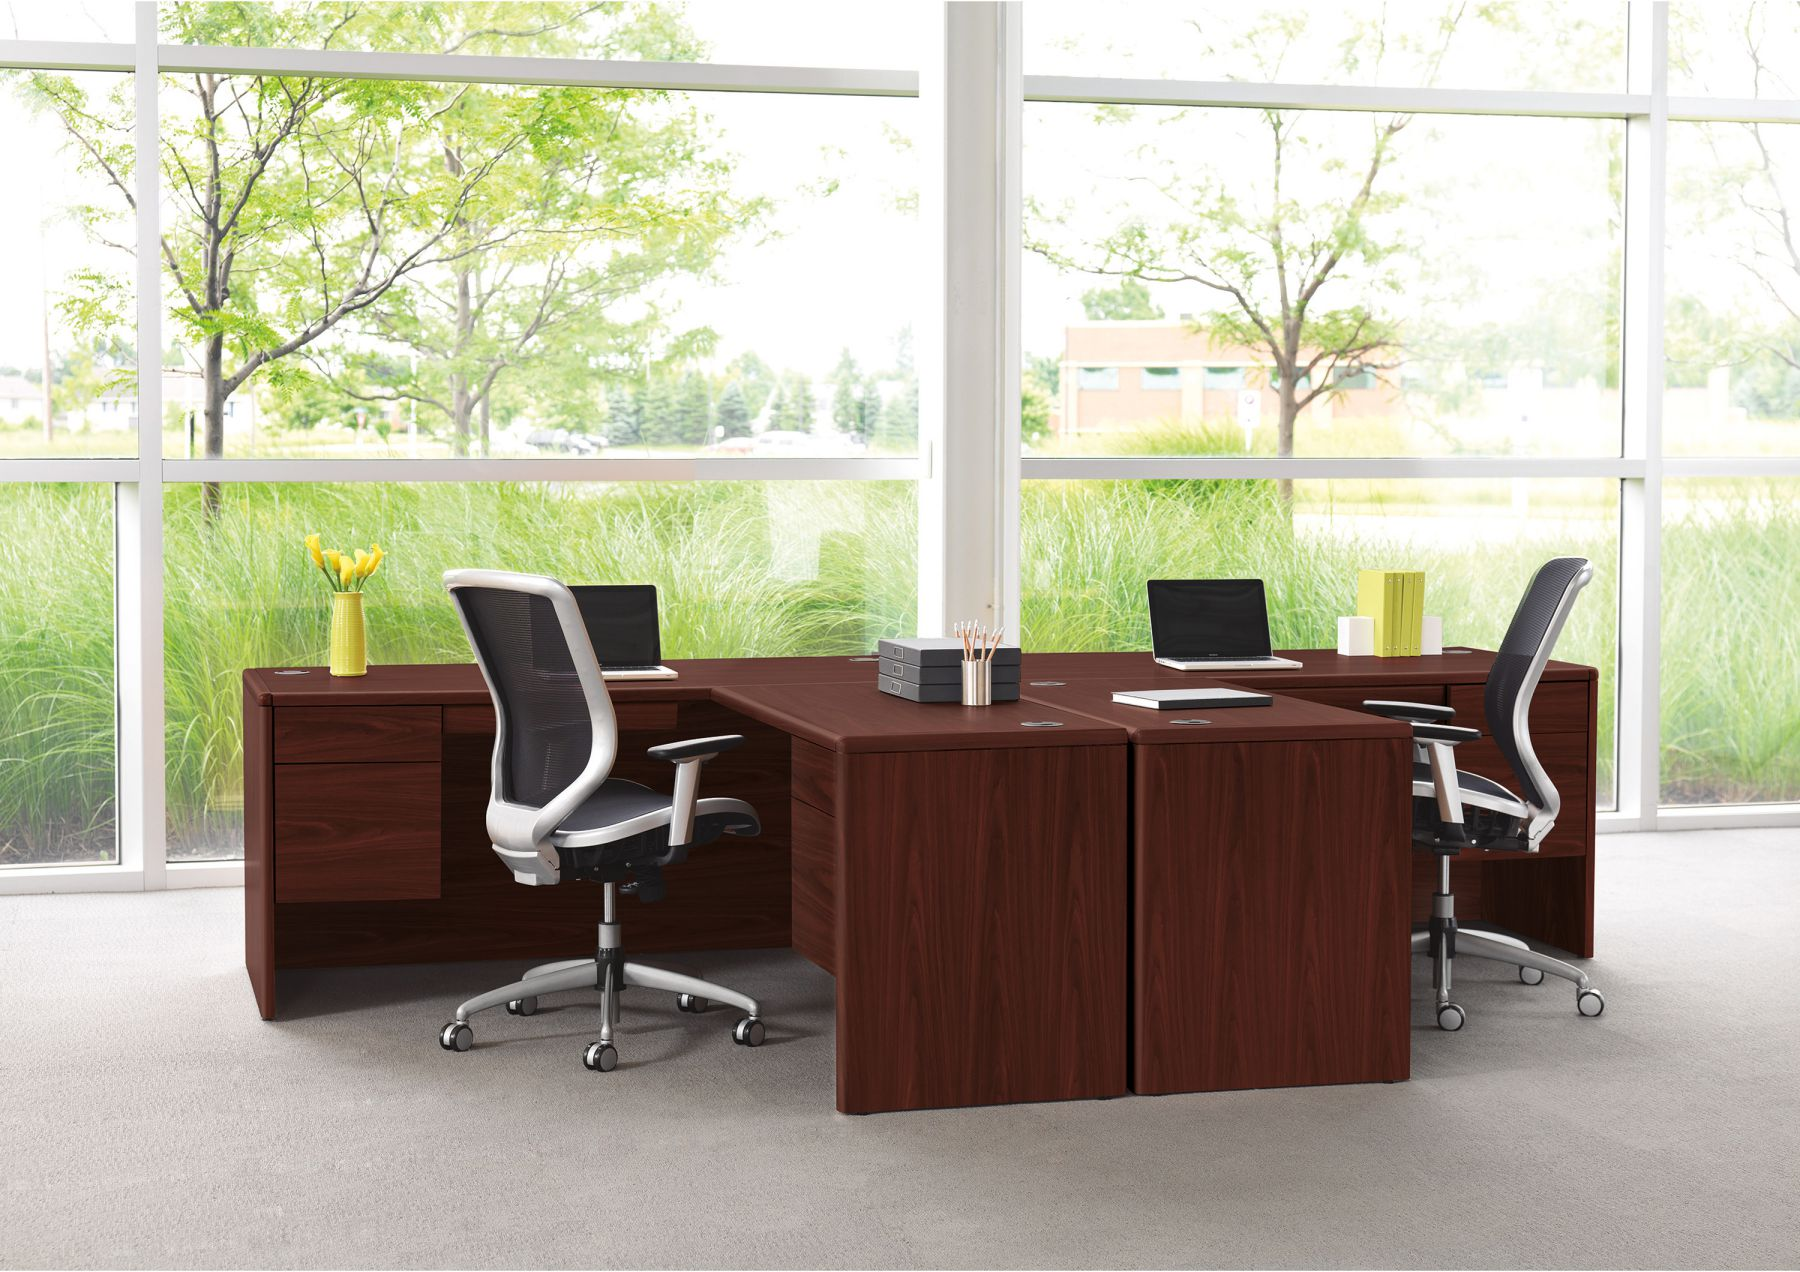 office desk solutions. Executive Office Desk Solutions - 754376 T